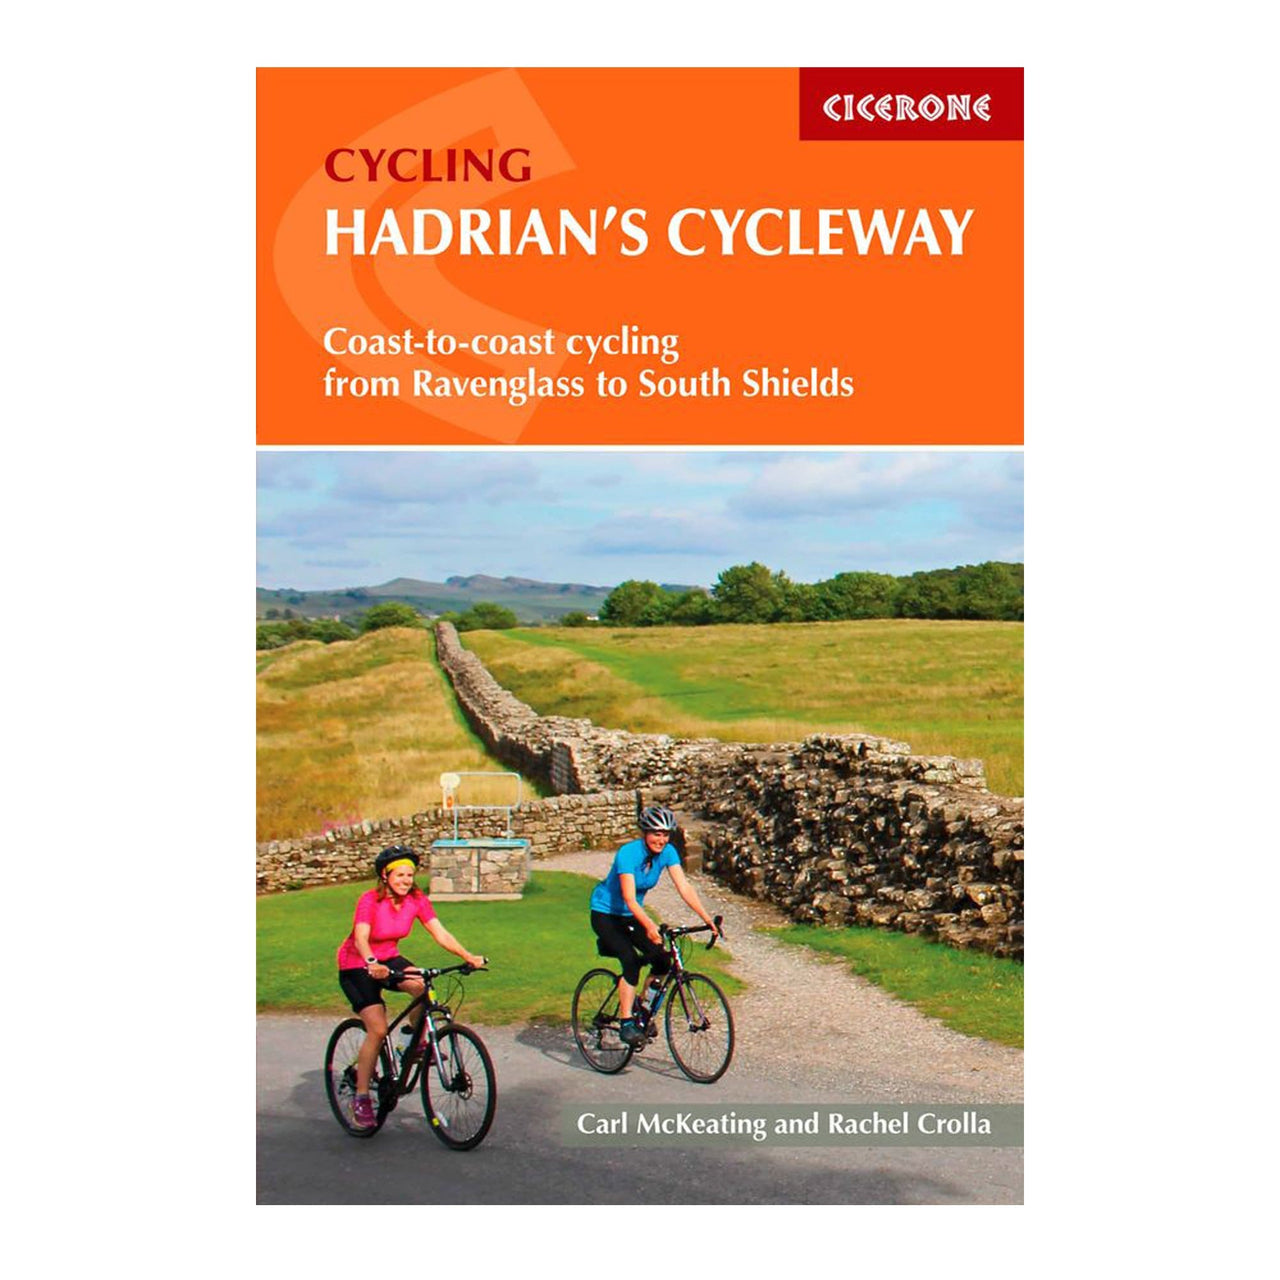 Cycling Hadrian's Cycleway